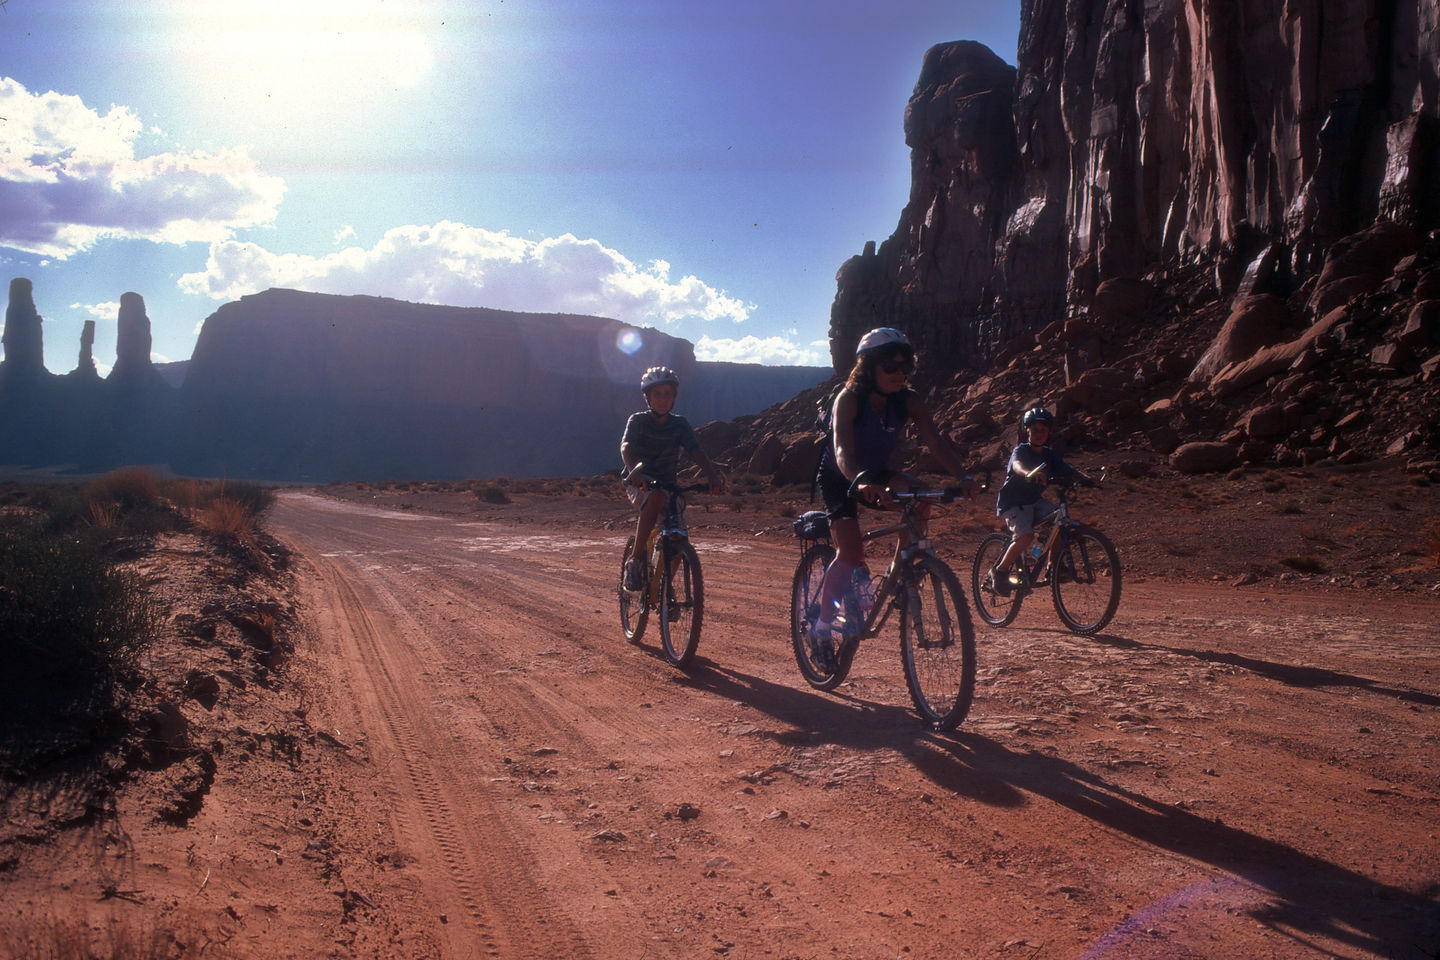 Lolo and the boys biking through Monument Valley